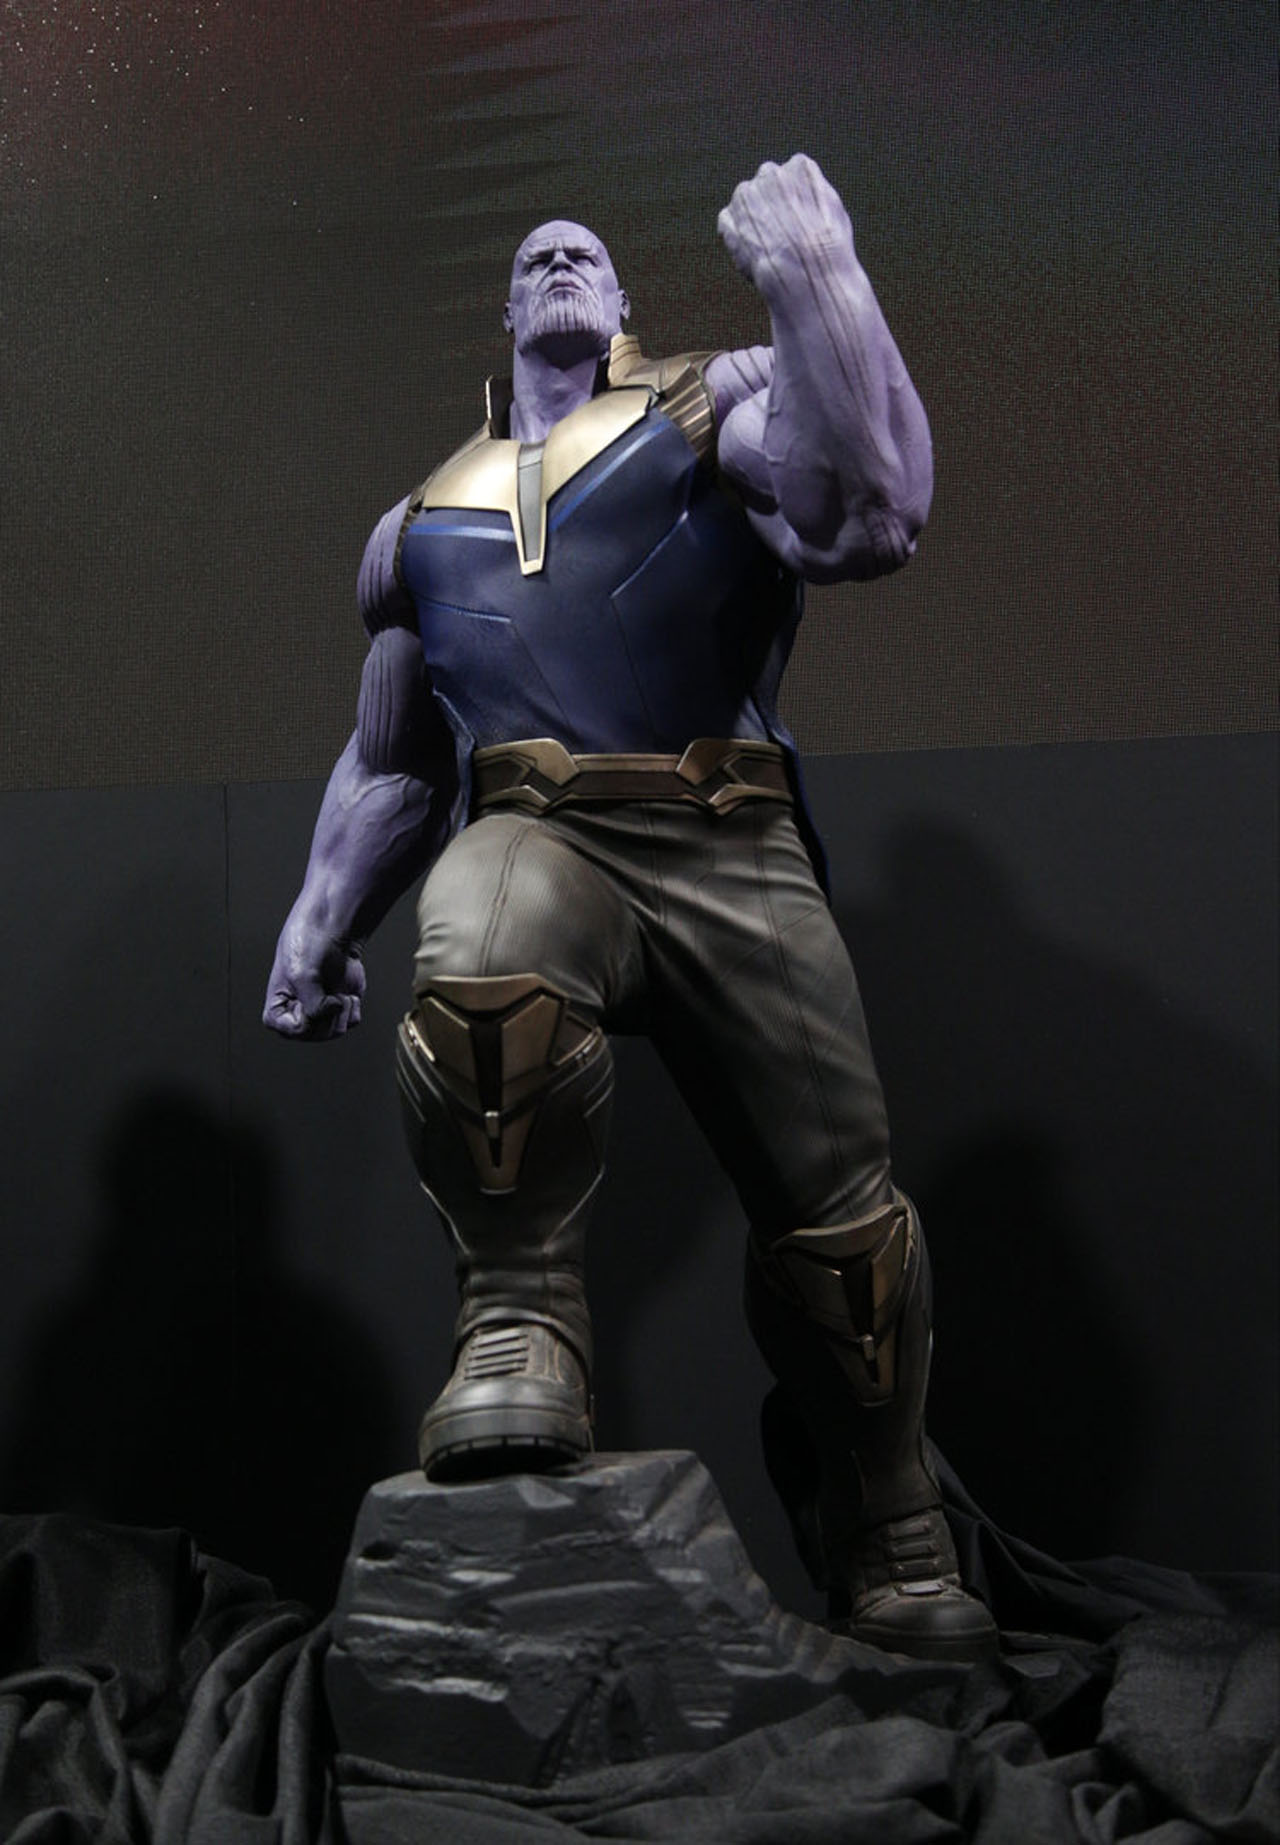 Photo du film Avengers: Infinity War au D23 2017 avec Thanos